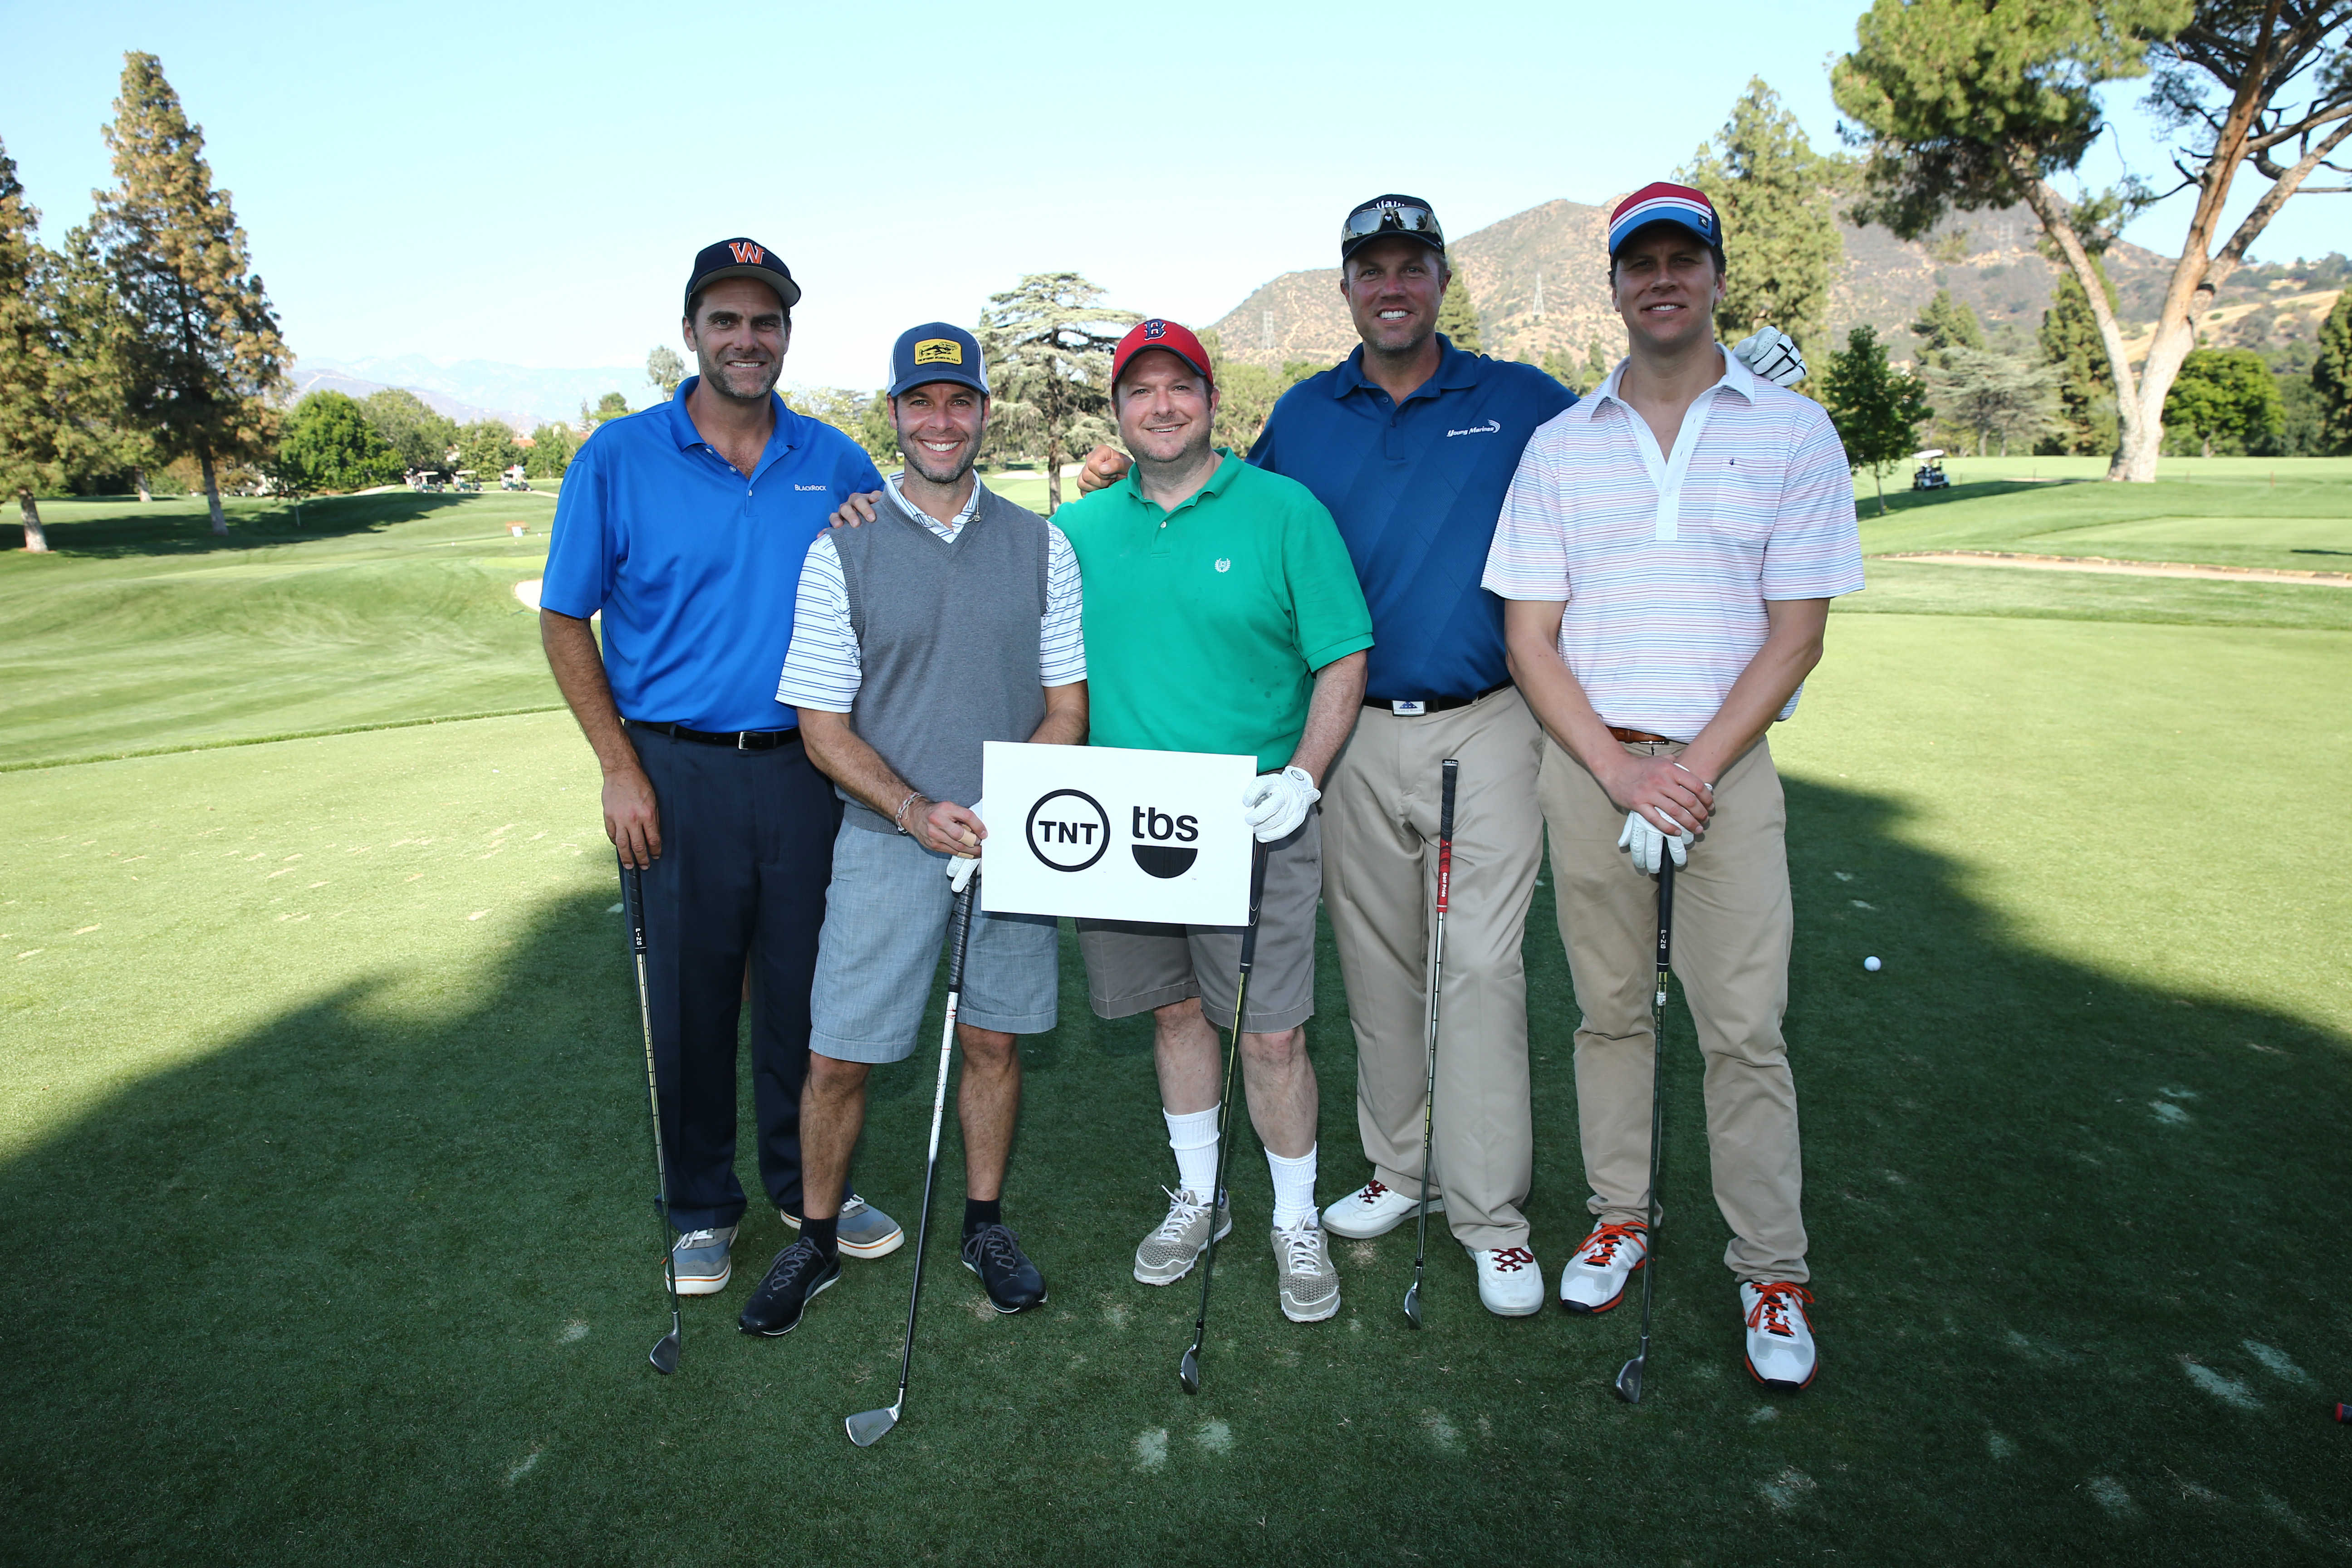 Andy Buckley, Brett Weitz, Sam Linsky, Adam Baldwin and Hayes MacArthur of Team TNT/TBS play at the Screen Actors Guild Foundation's 6th Annual Los Angeles Golf Classic on June 8, 2015 in Burbank, California. (Photo by Mark Davis/Getty Images for The Screen Actors Guild Foundation)